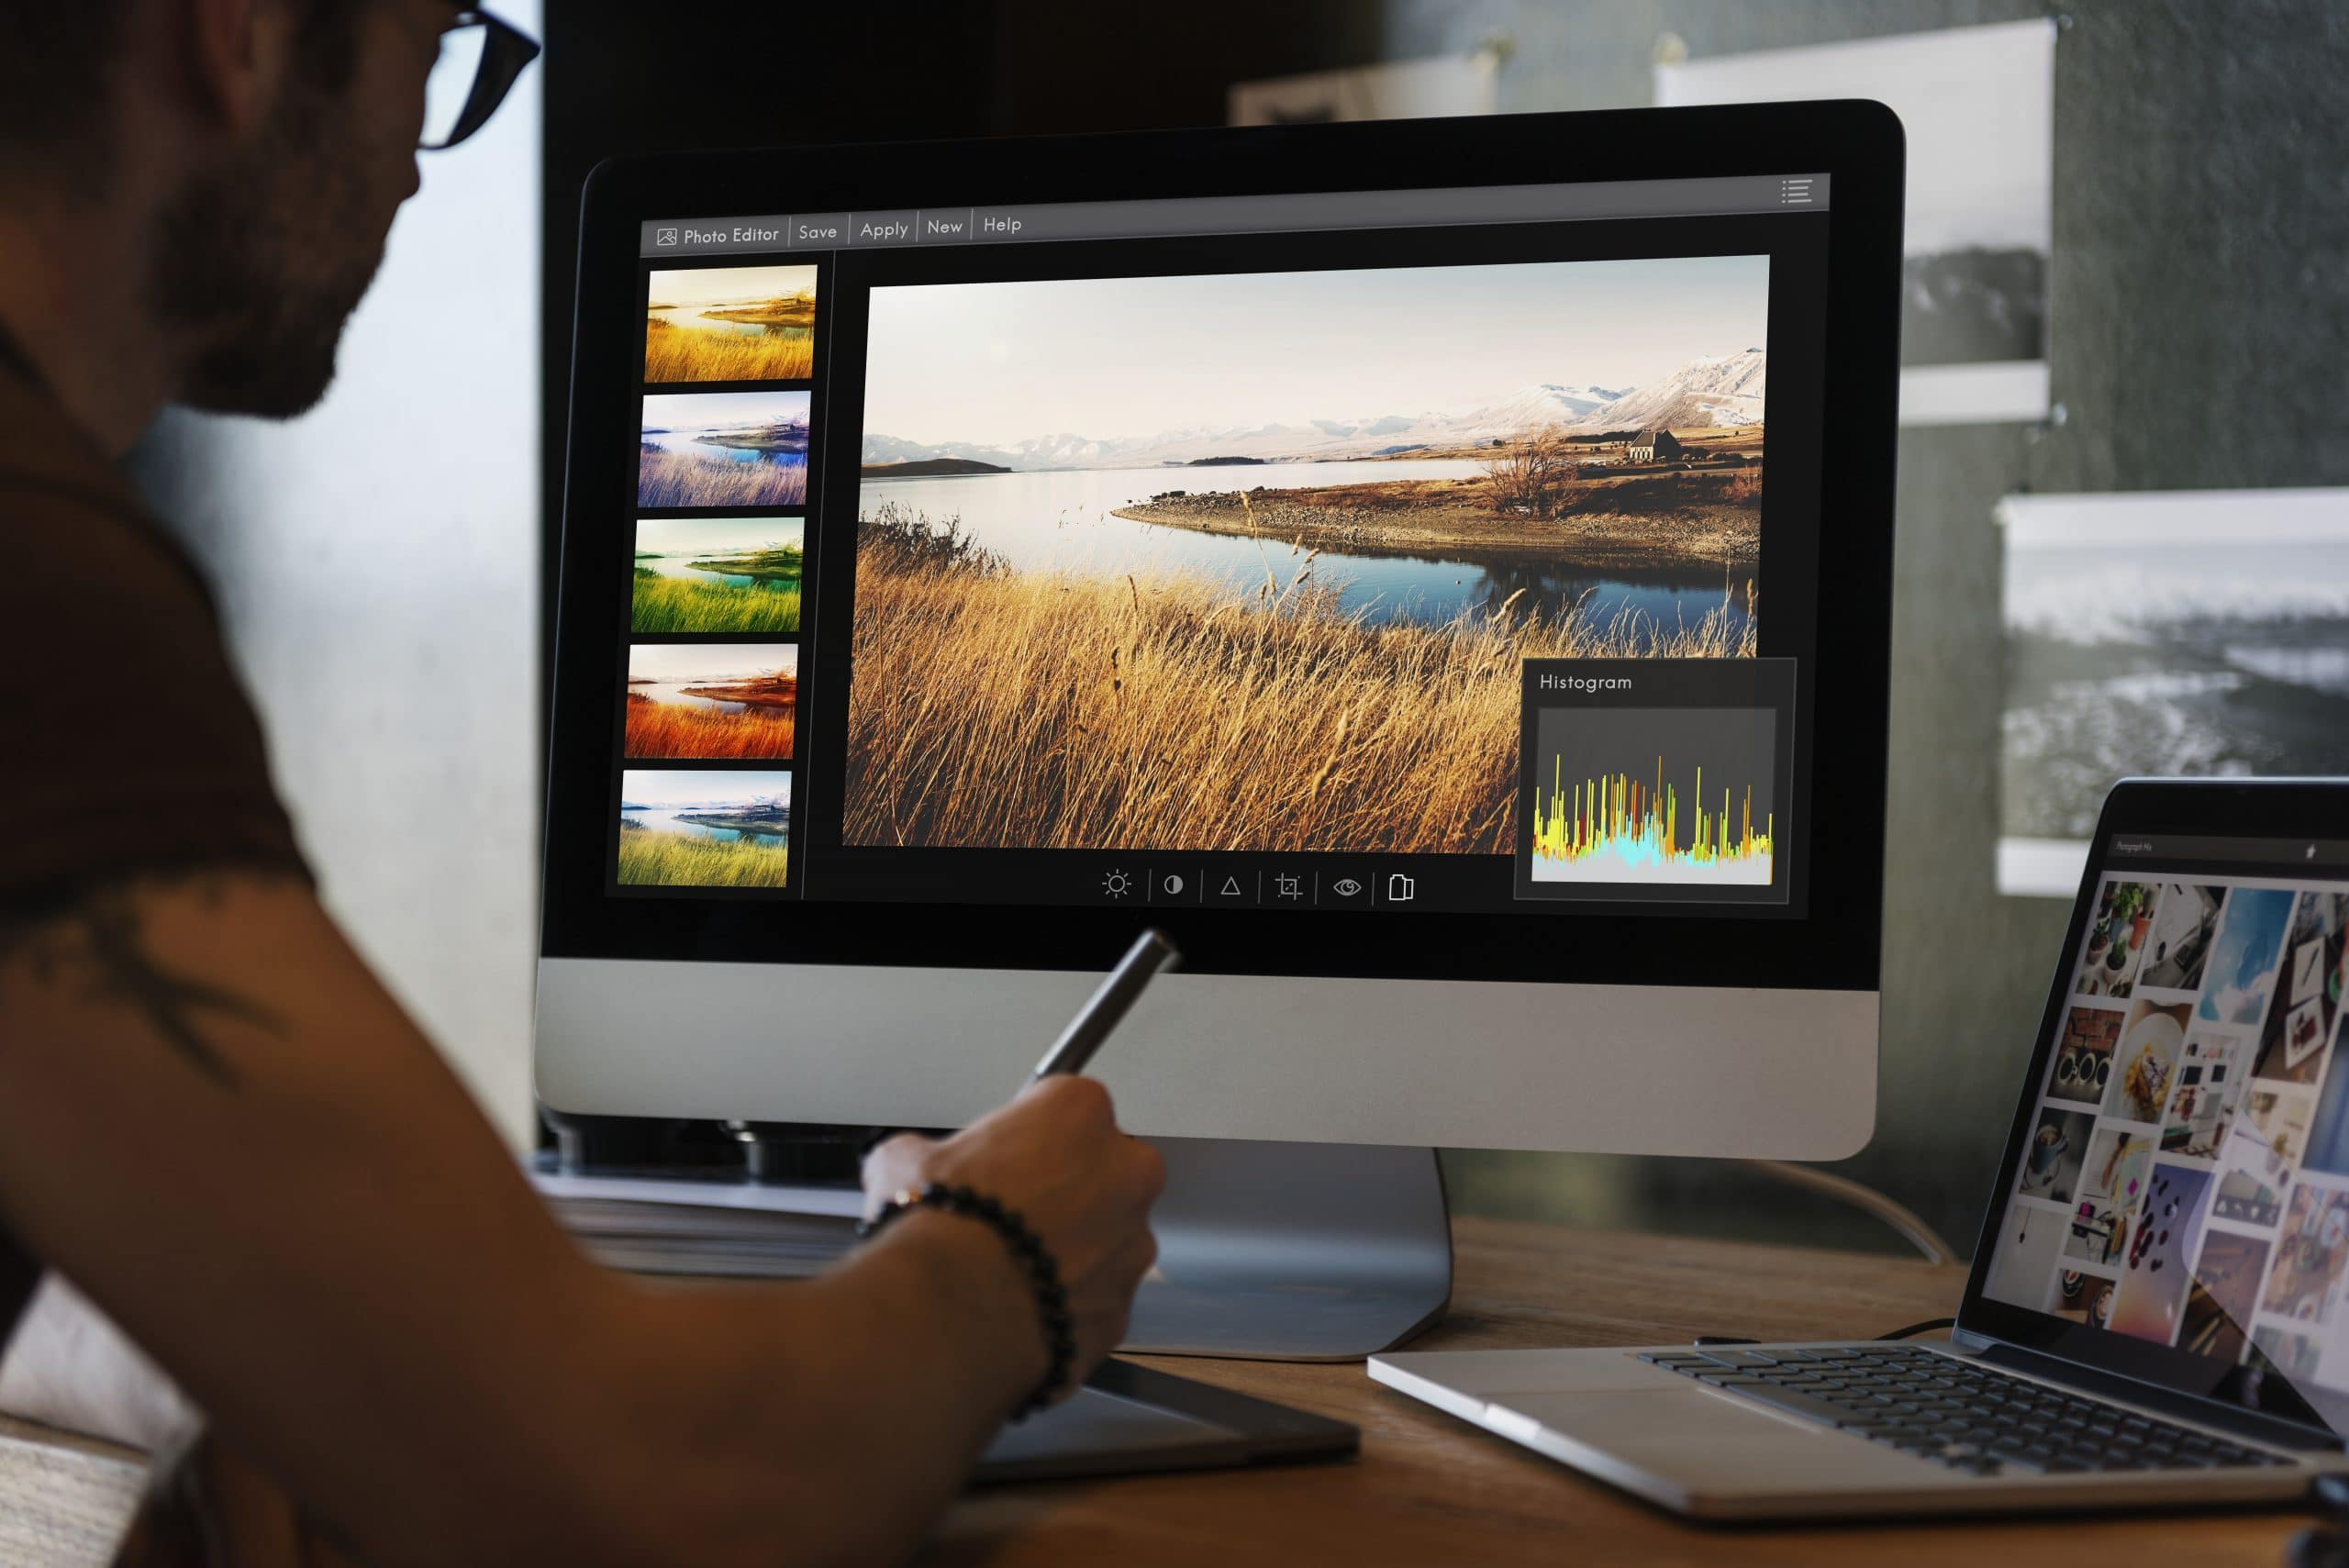 Common Photo Editing Mistakes to Avoid